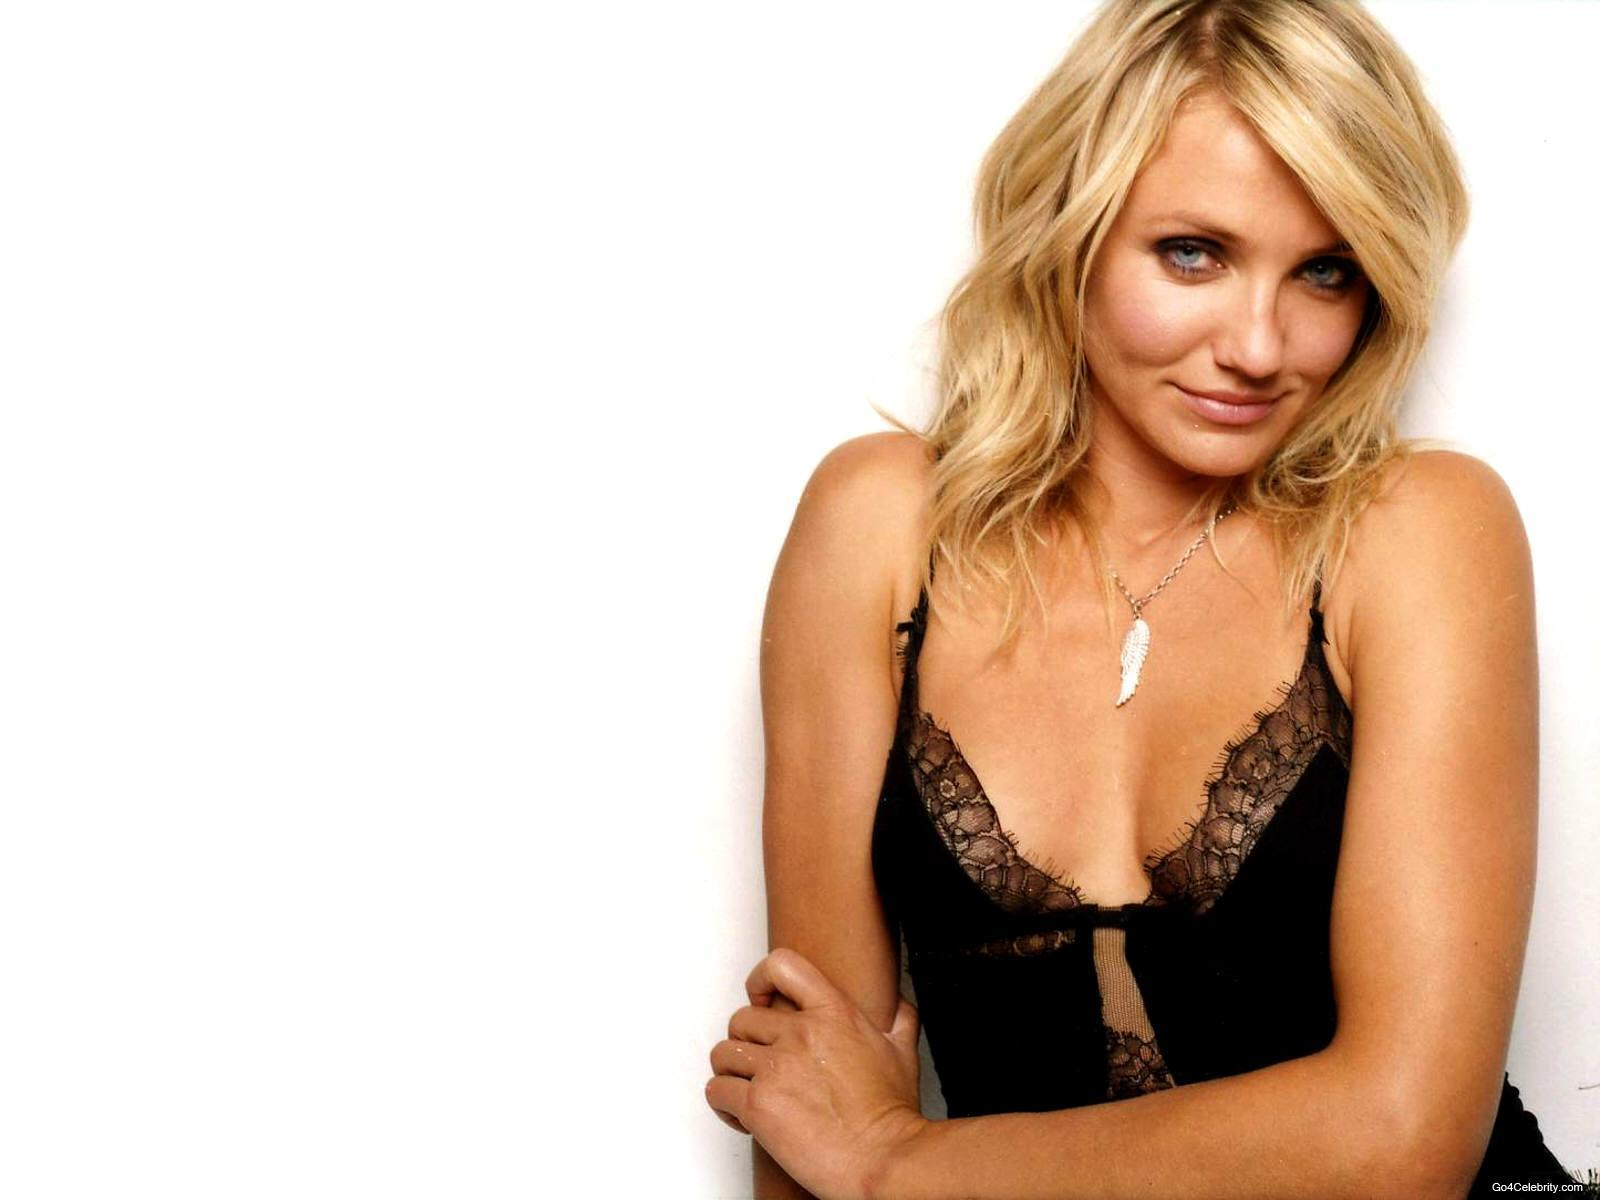 Cameron Diaz Wallpapers HD | Full HD Pictures: fullhdpictures.com/new-cameron-diaz-hq-wallpapers.html/cameron-diaz...